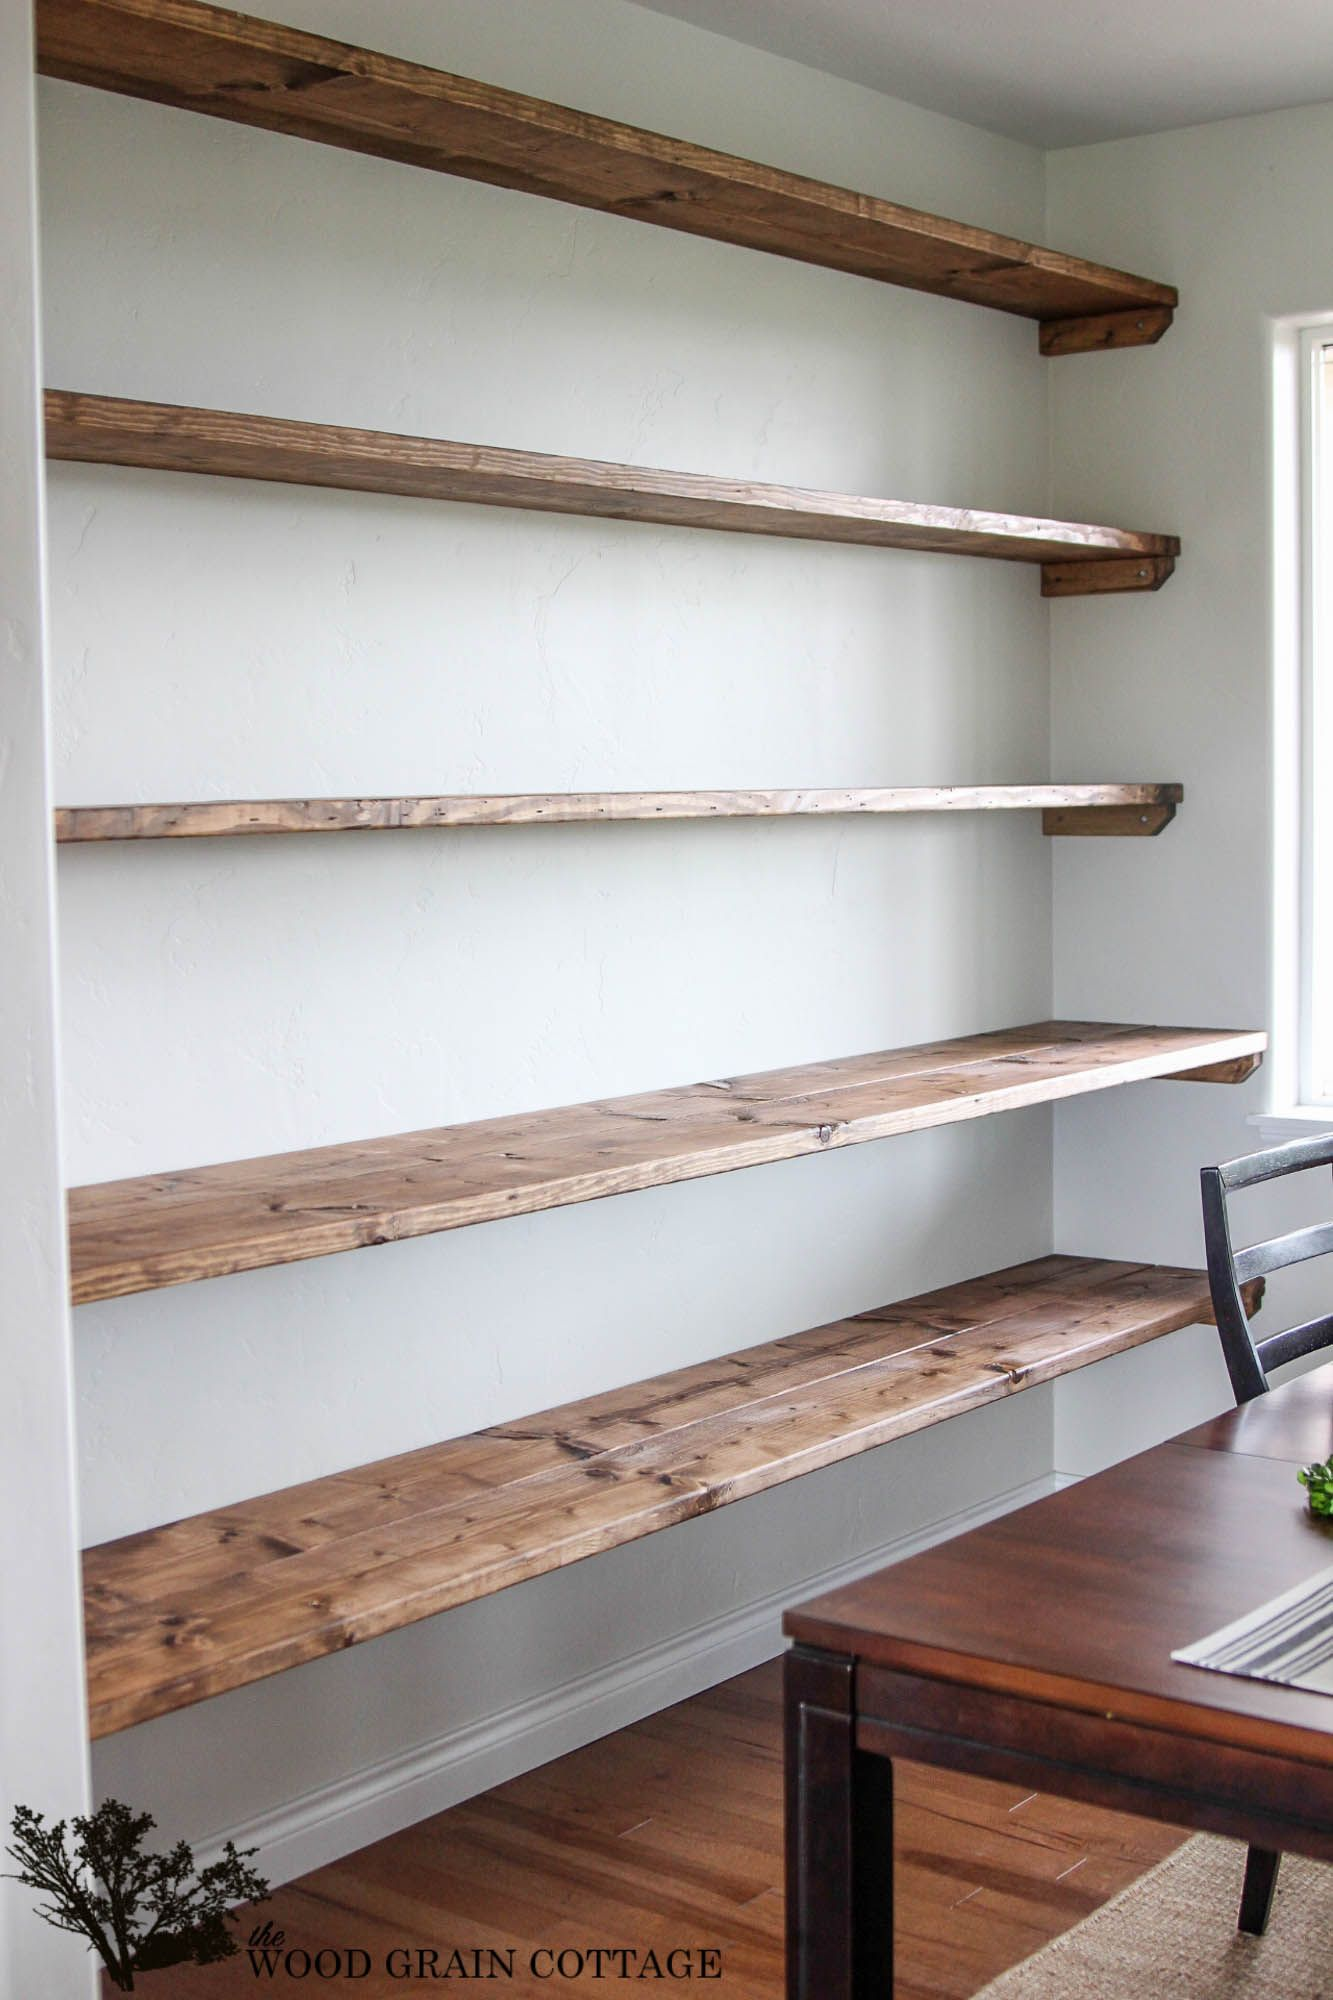 diy dining room open shelving new home furniture projects extra large floating shelves over year ago wrote post about how wanted big wall our and for been patiently waiting tower